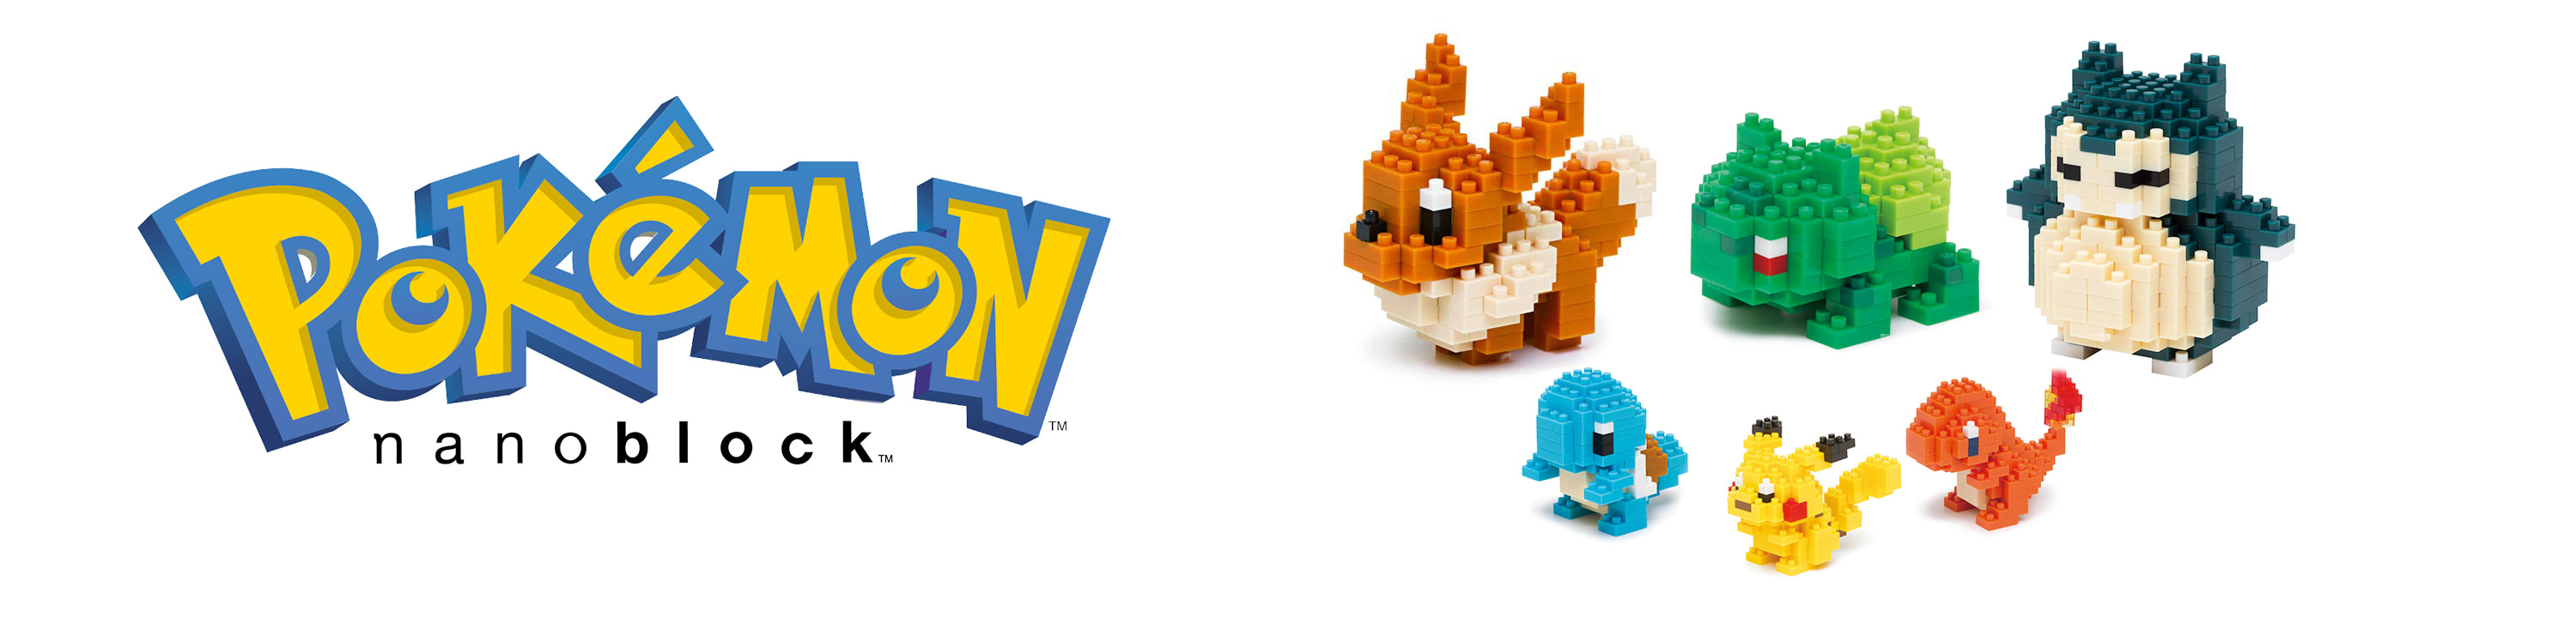 Pokémon Nanoblocks